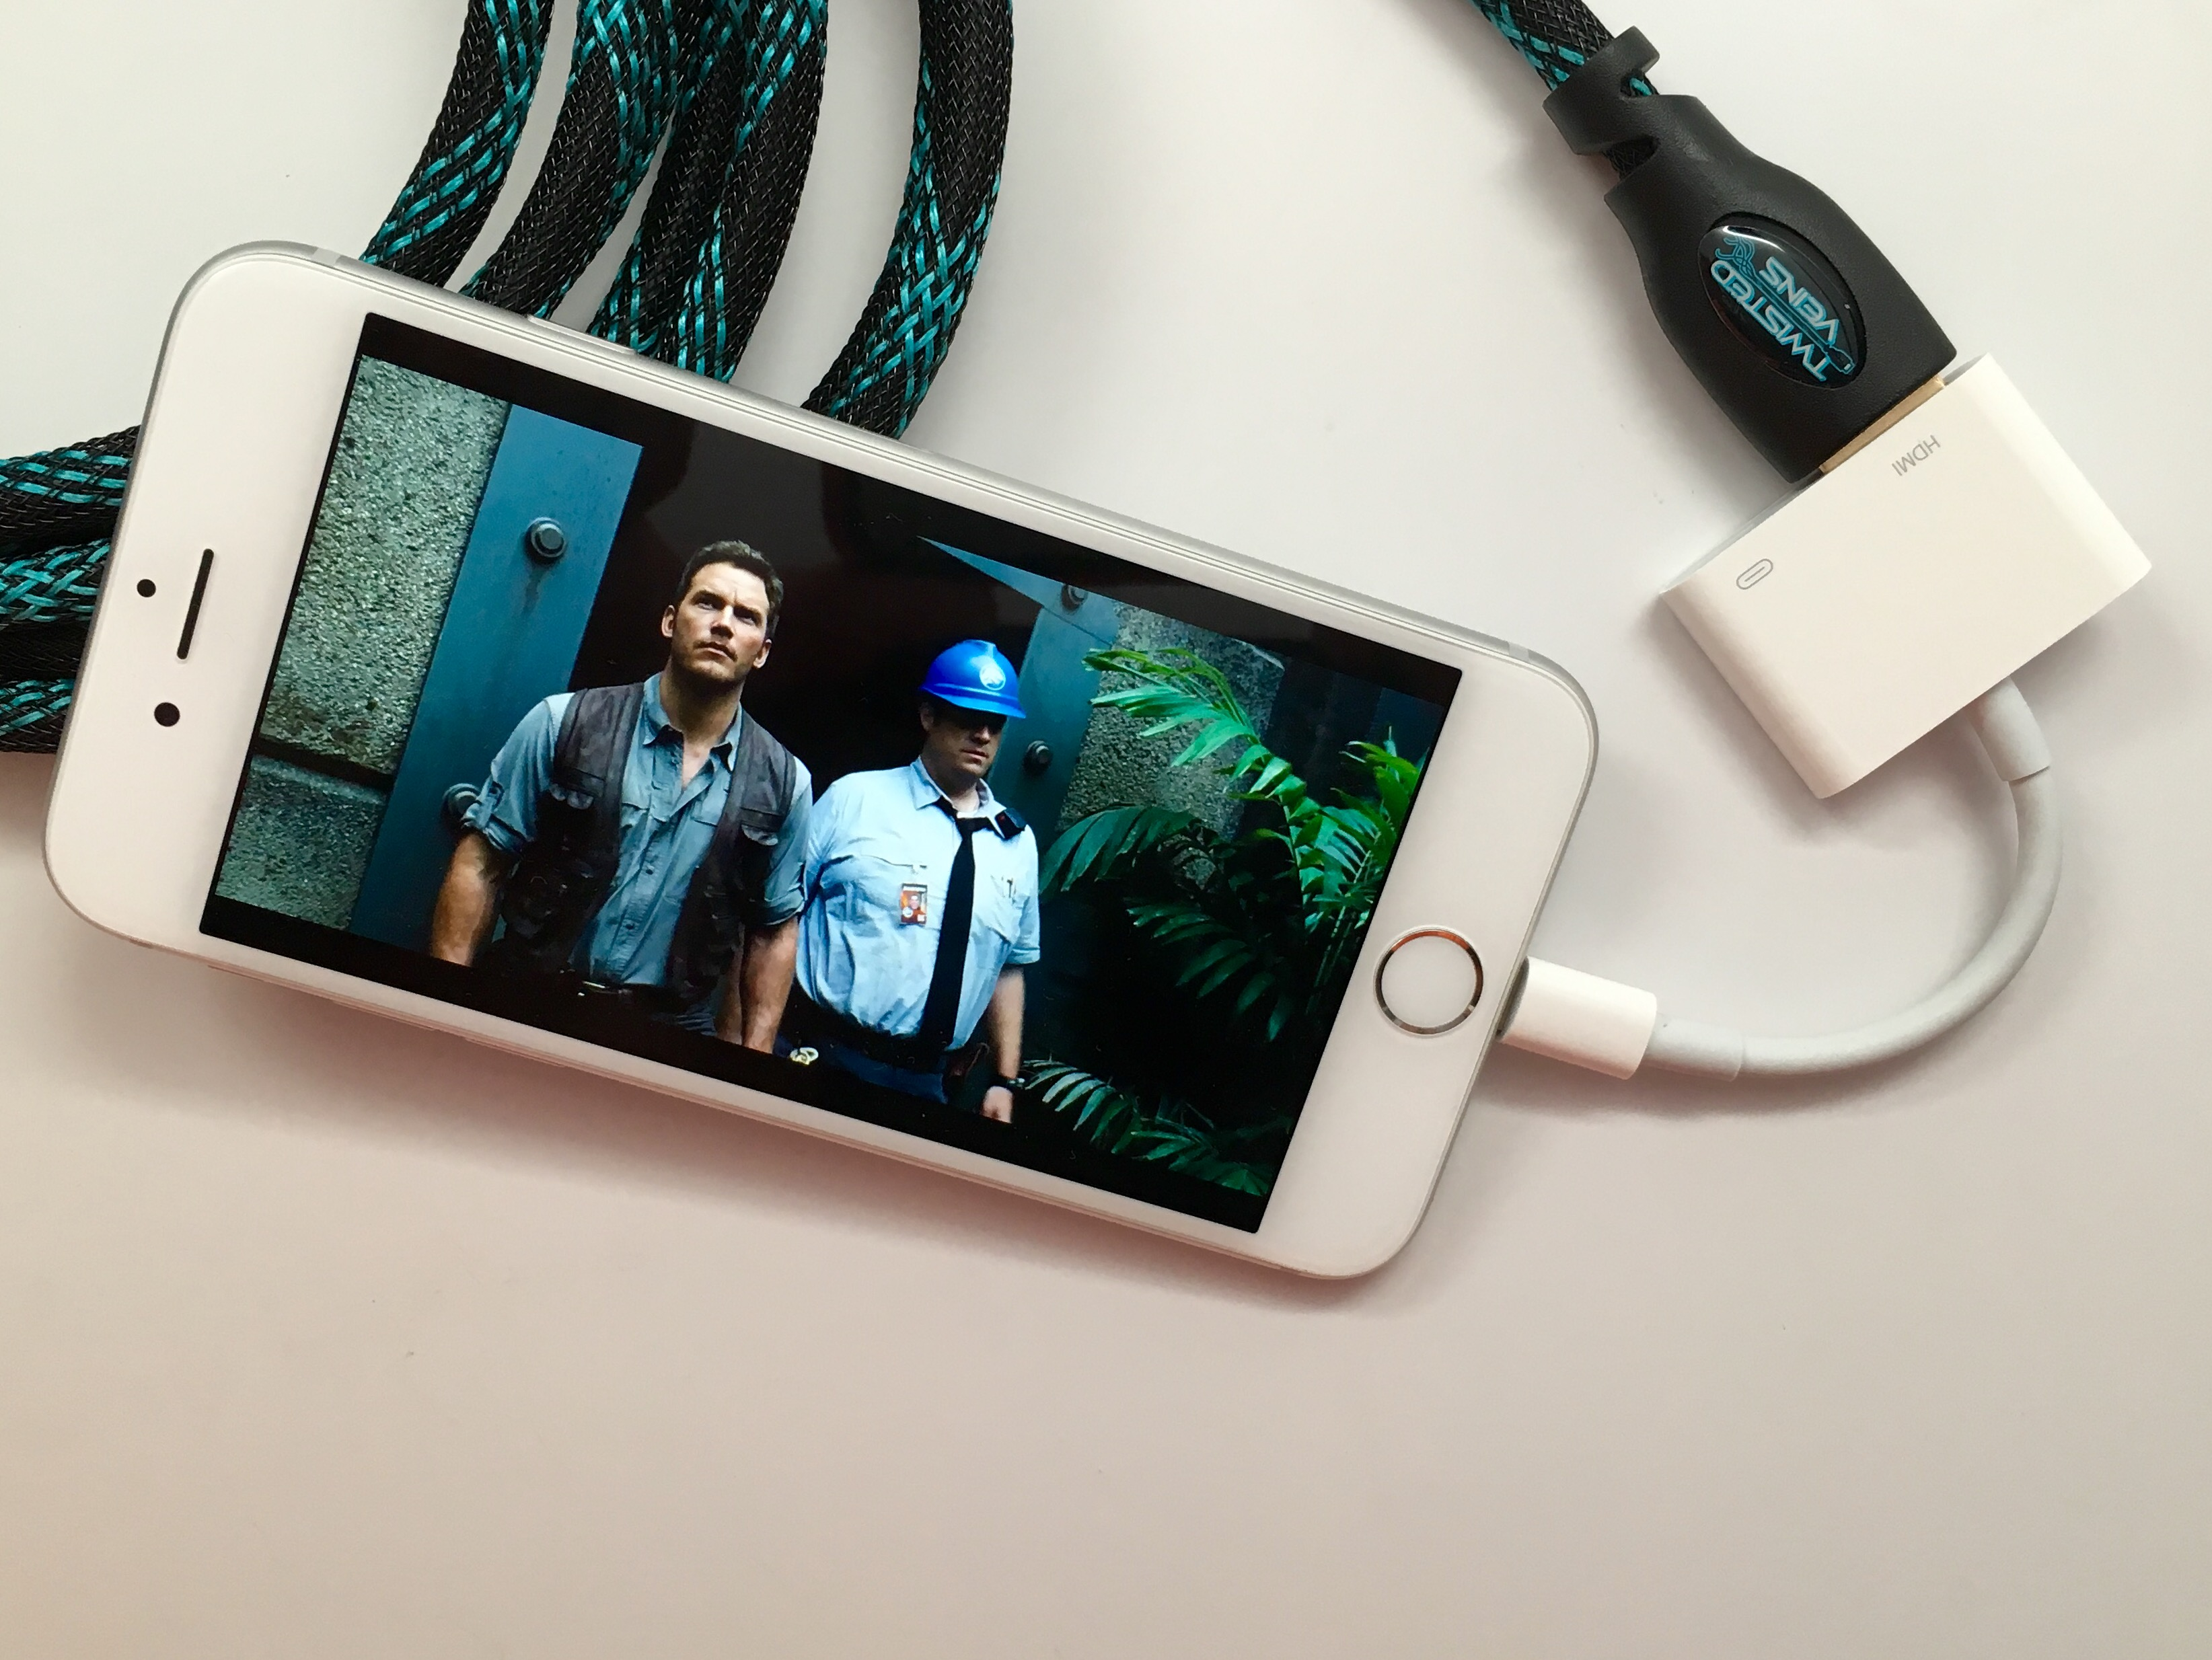 How to connect iPhone to TV with the Lightning to HDMI adapter.